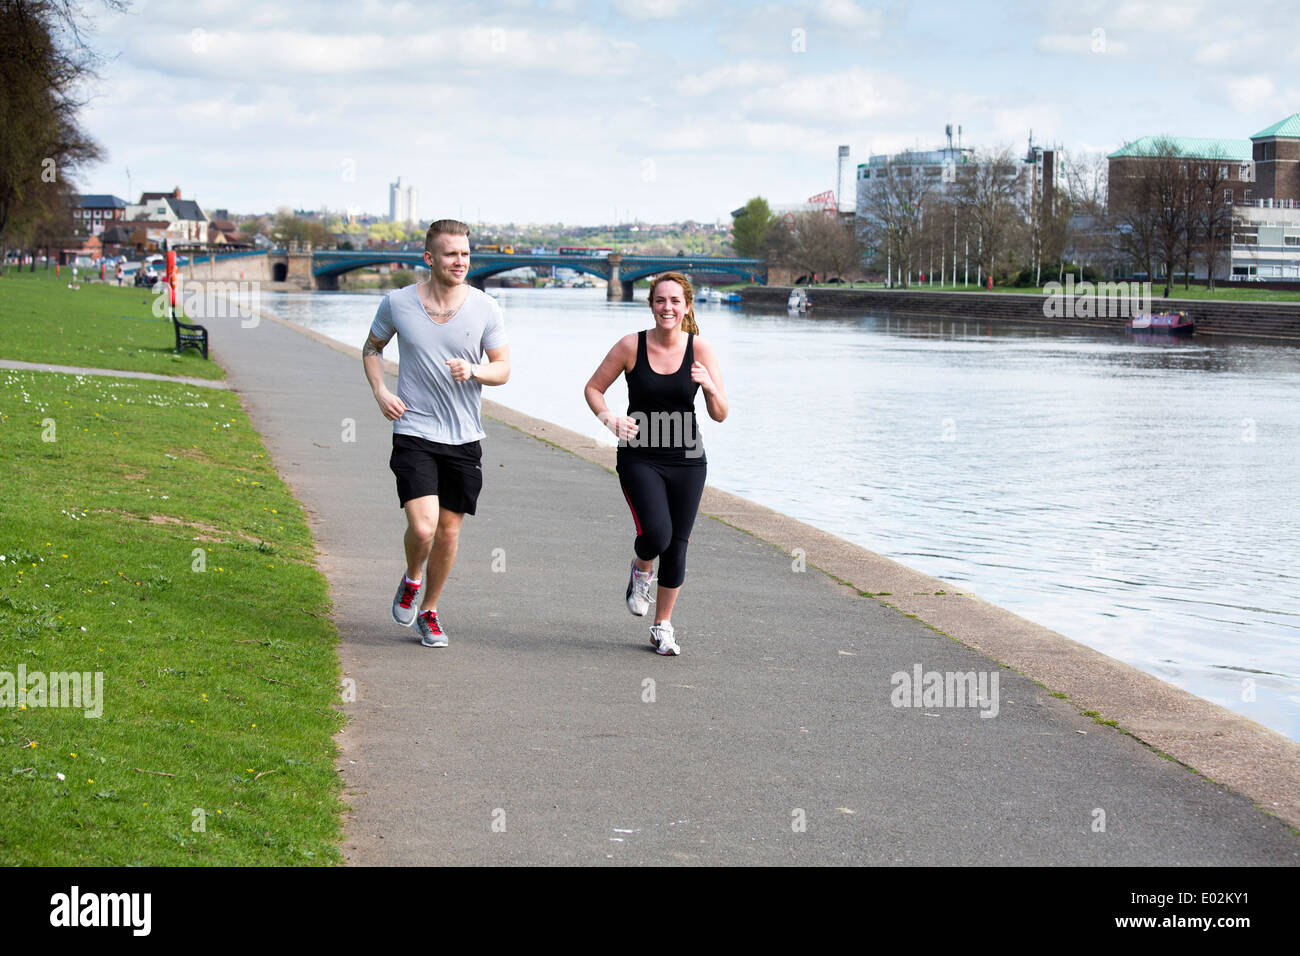 Two joggers running along the Embankment next to the River Trent in Nottingham. - Stock Image